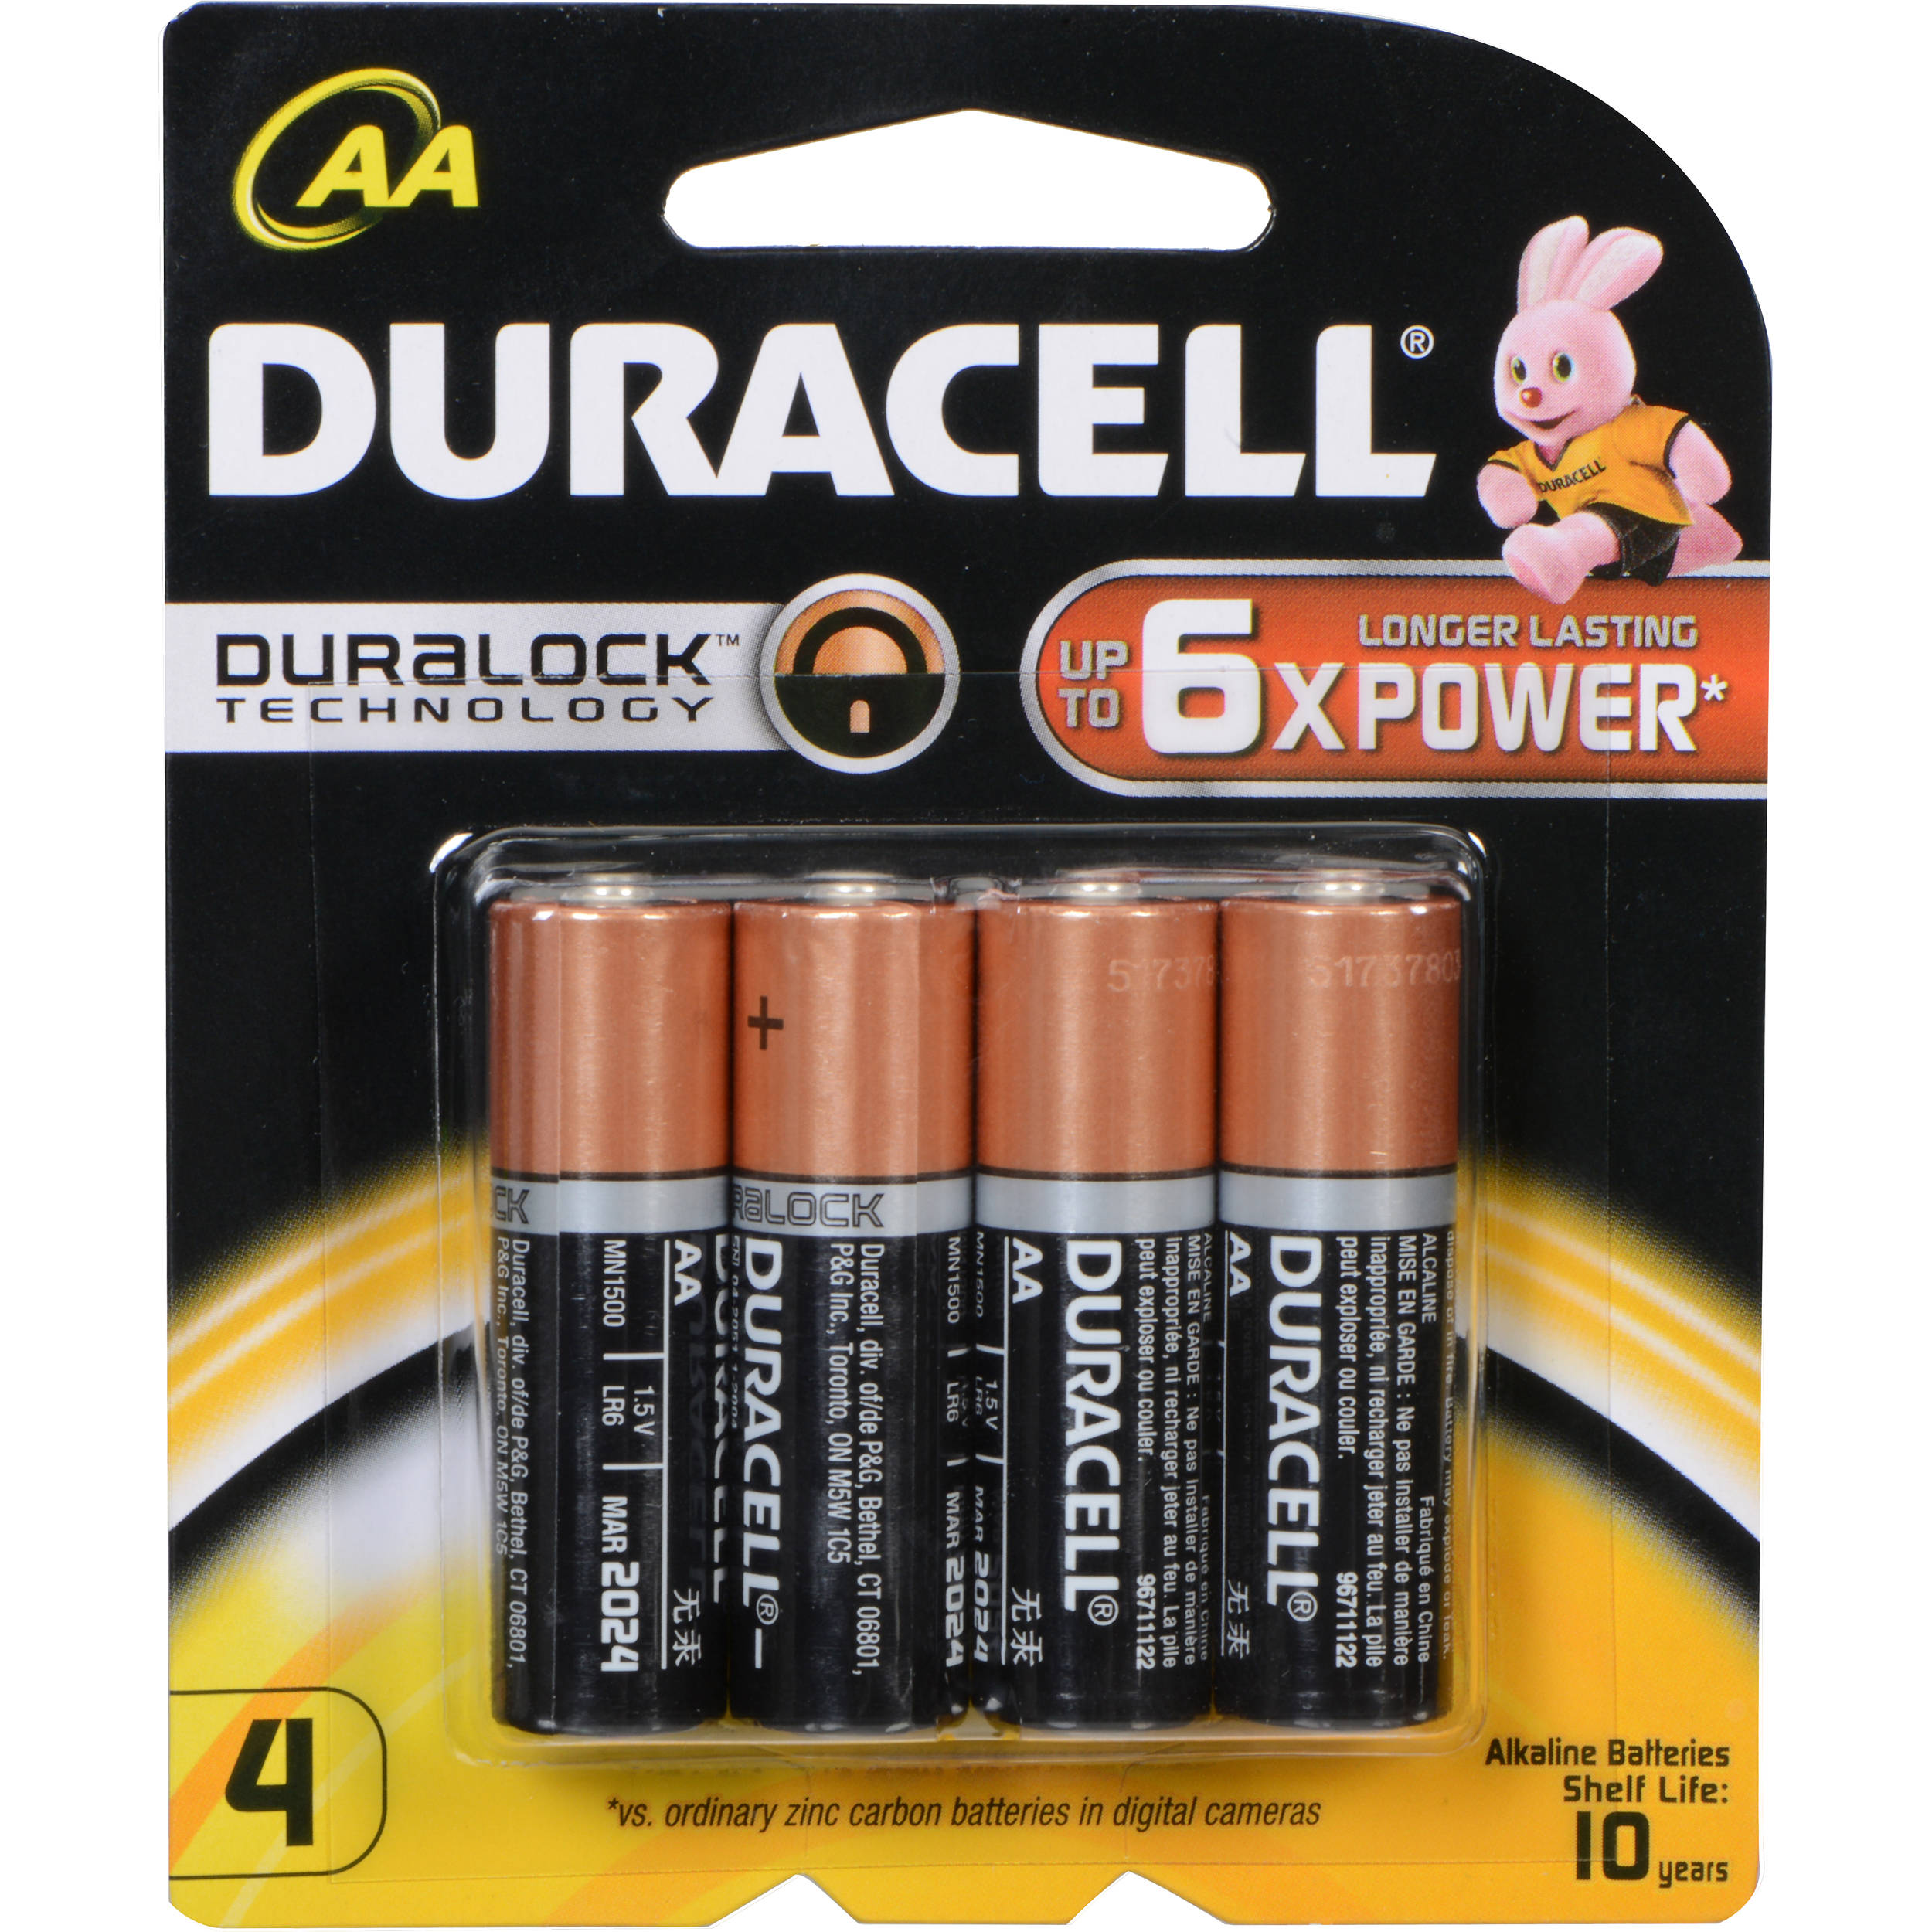 duracell duracell 1 5v aa coppertop alkaline batteries mn15004. Black Bedroom Furniture Sets. Home Design Ideas